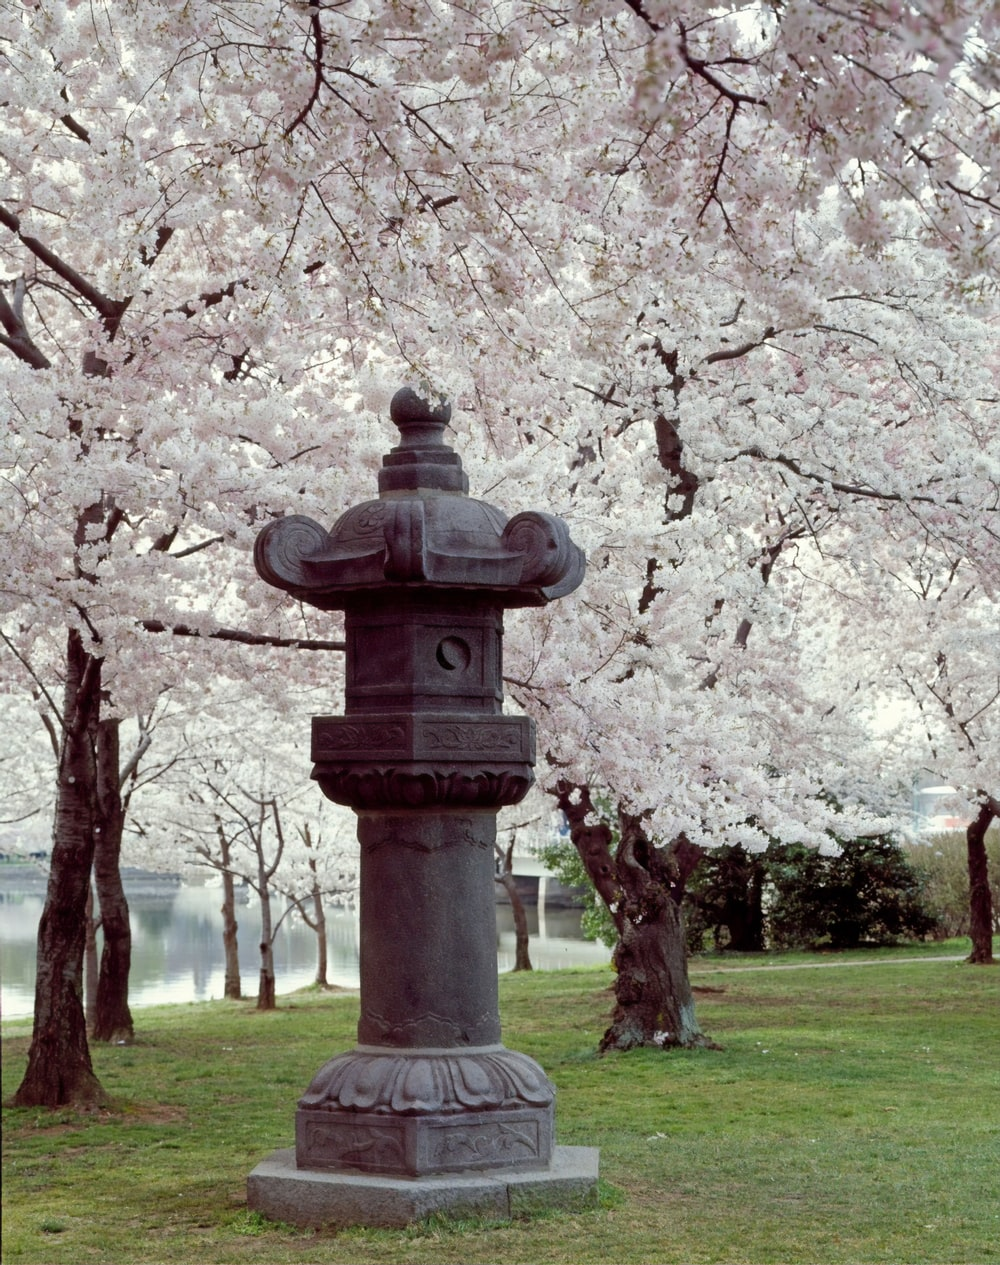 Cherry trees along the Tidal Basin with Japanese Lantern placed in the park in 1954.